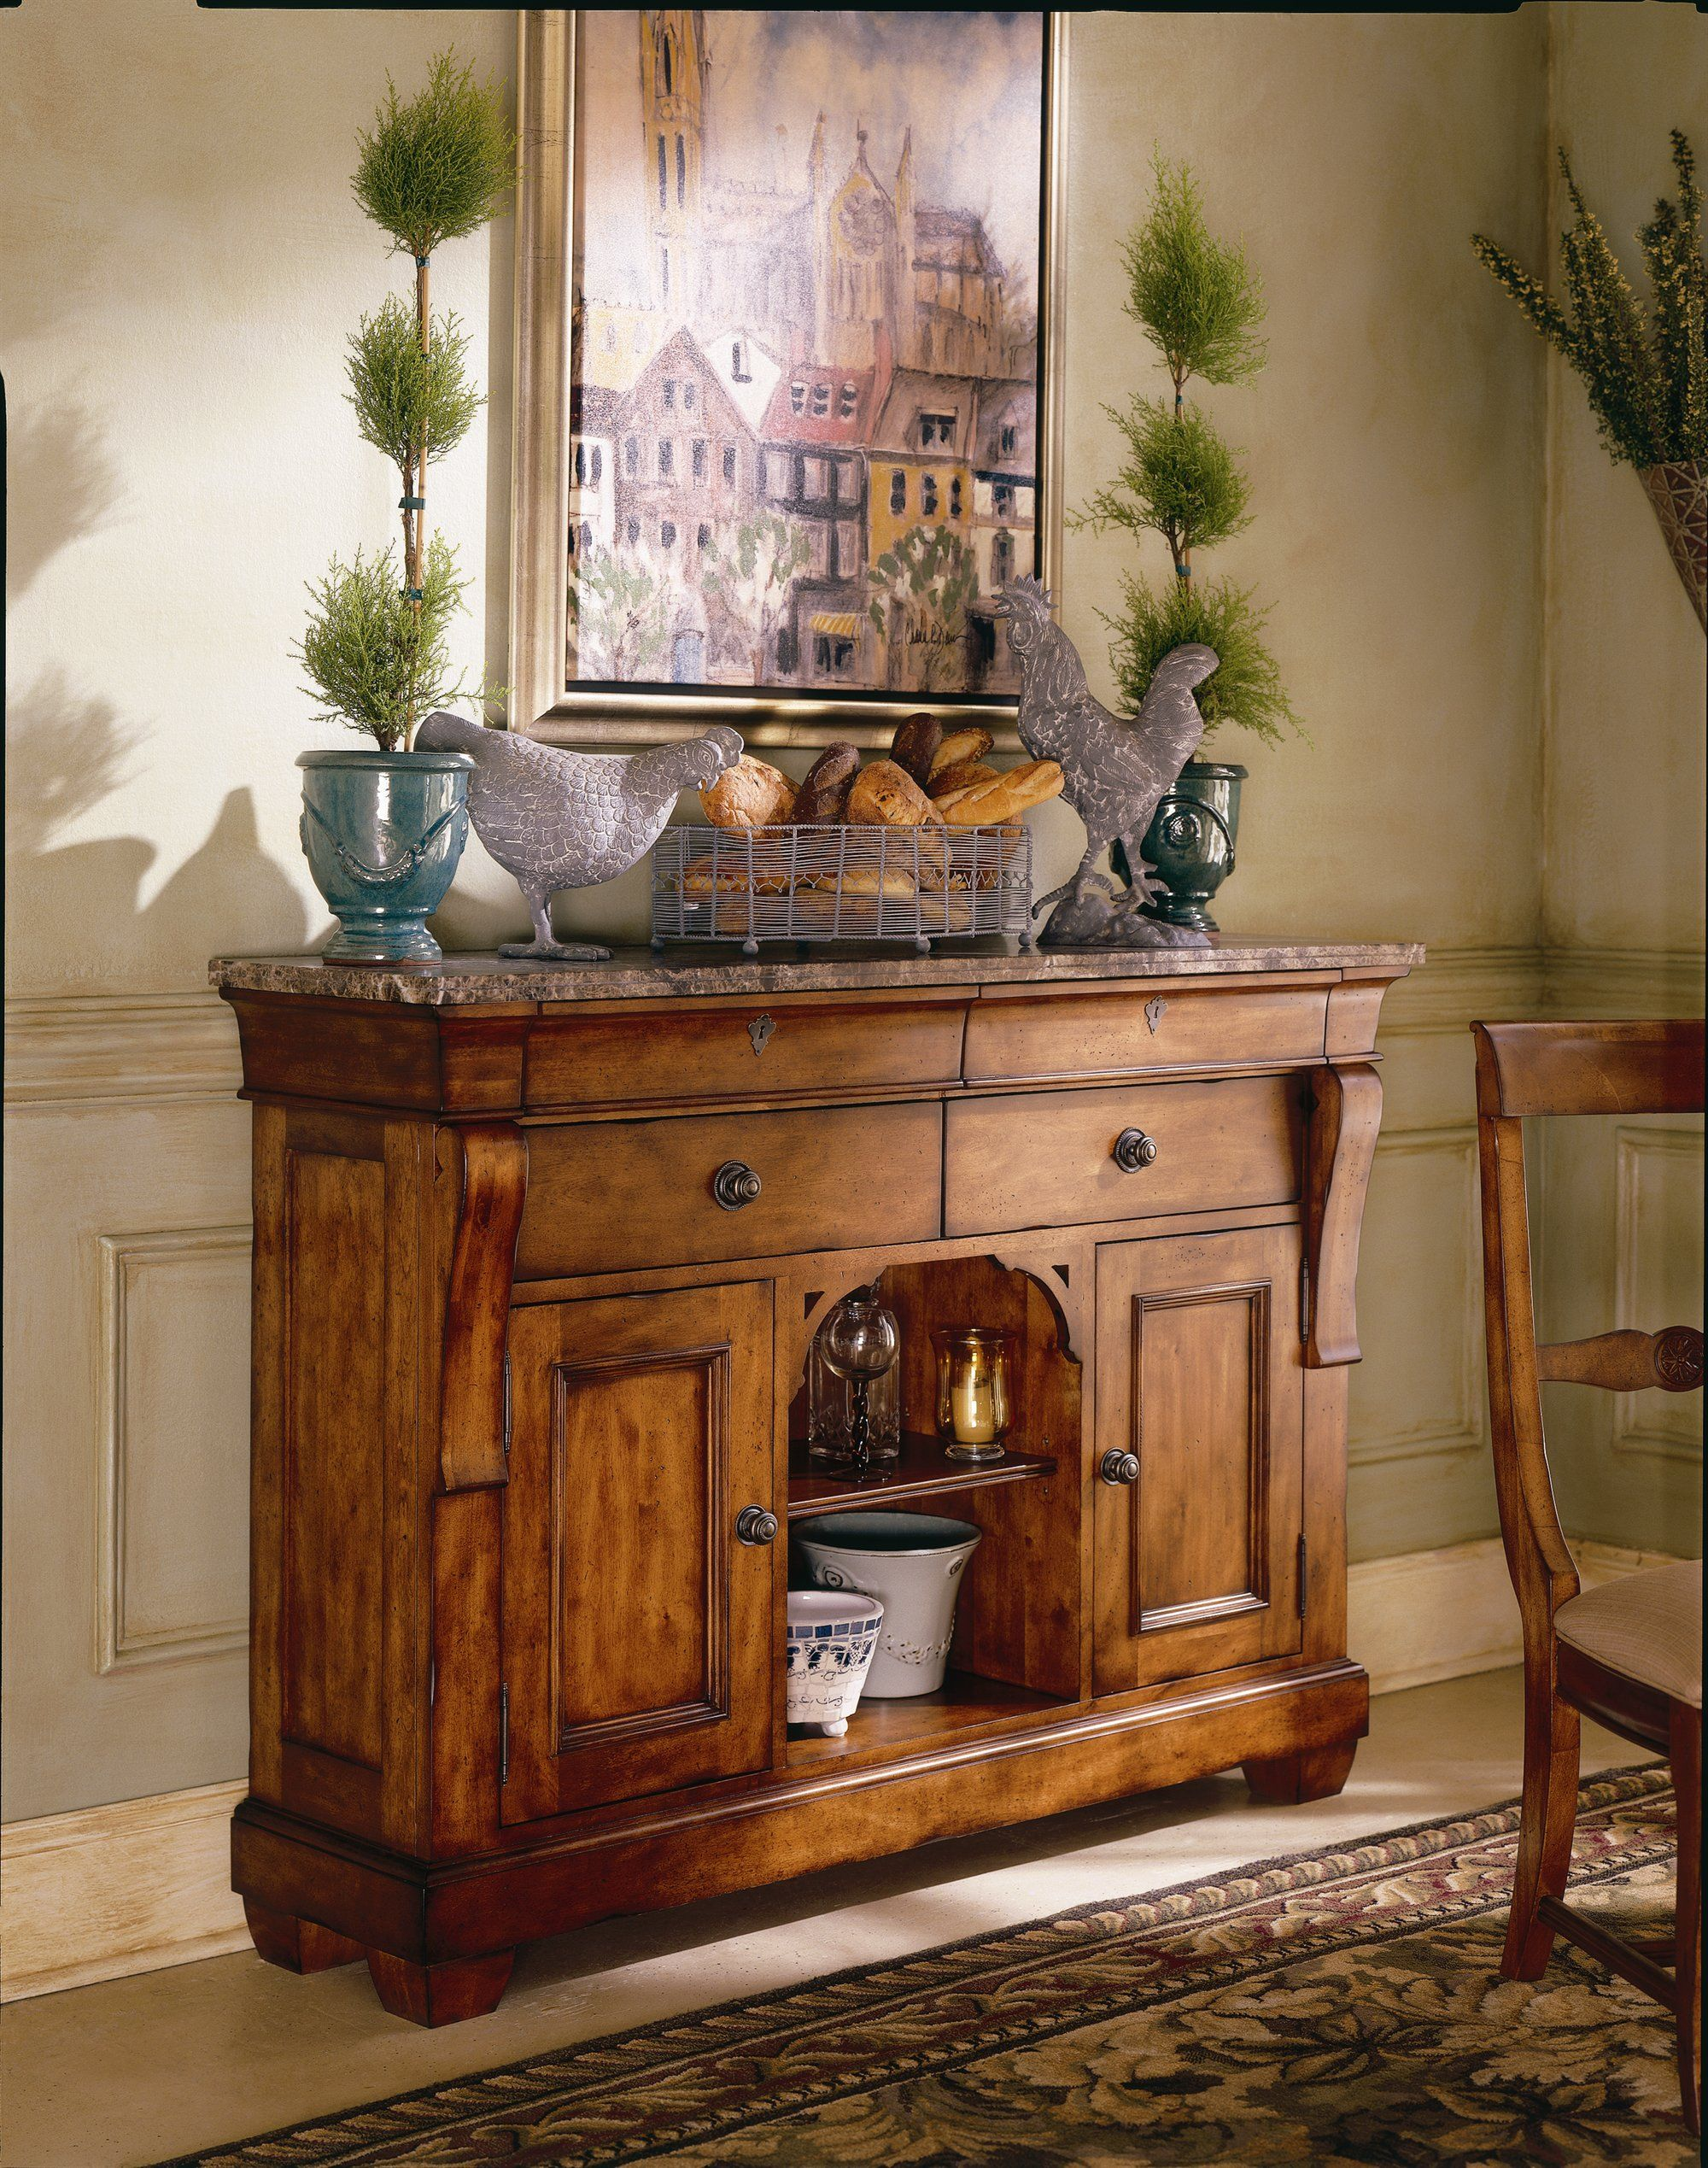 The Sideboard Plays An Important Role In The Establishment Of Many